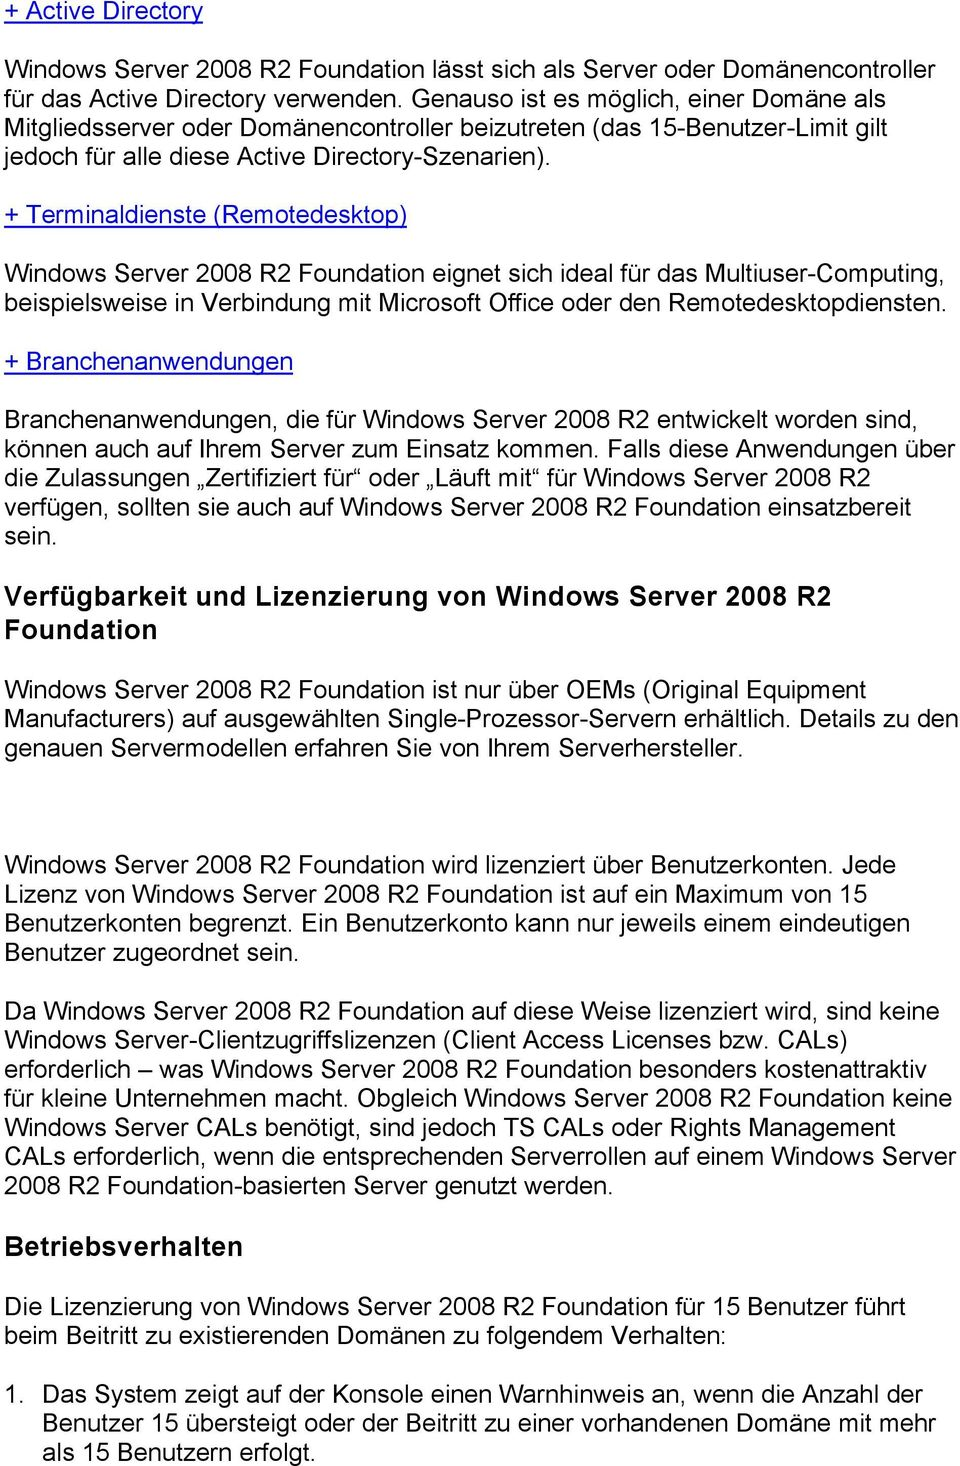 + Terminaldienste (Remotedesktop) Windows Server 2008 R2 Foundation eignet sich ideal für das Multiuser-Computing, beispielsweise in Verbindung mit Microsoft Office oder den Remotedesktopdiensten.